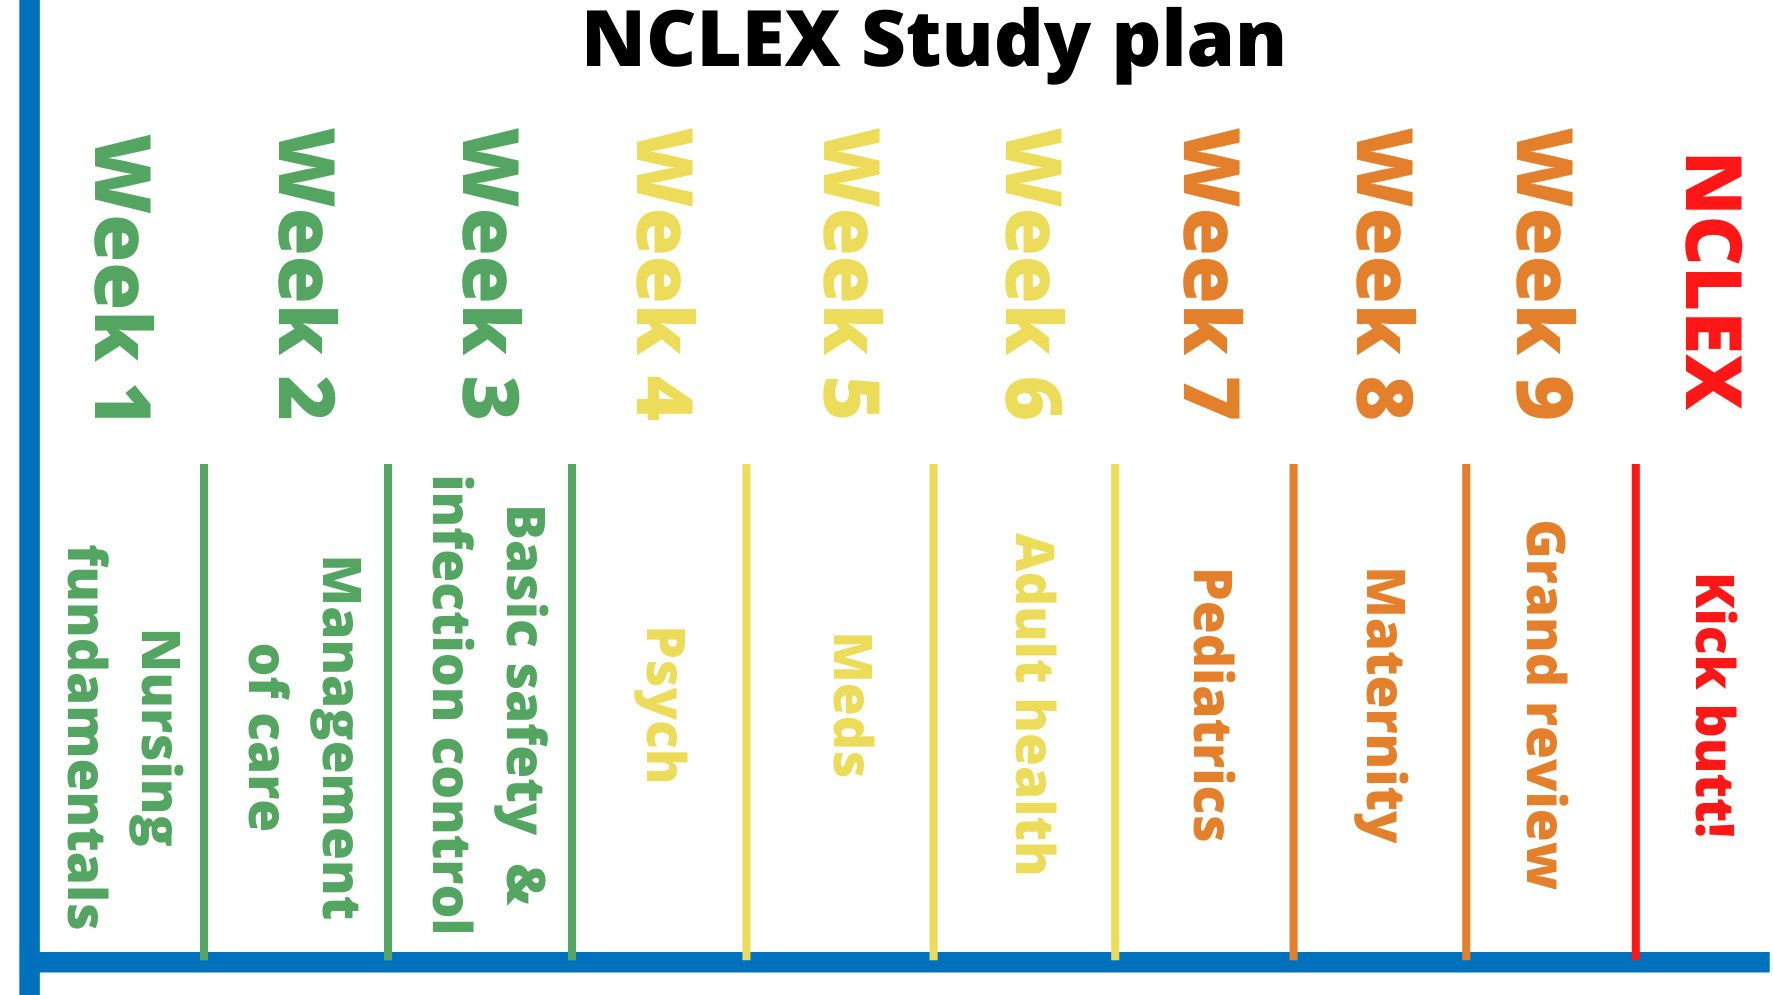 Your NCLEX study plan by Brainscape